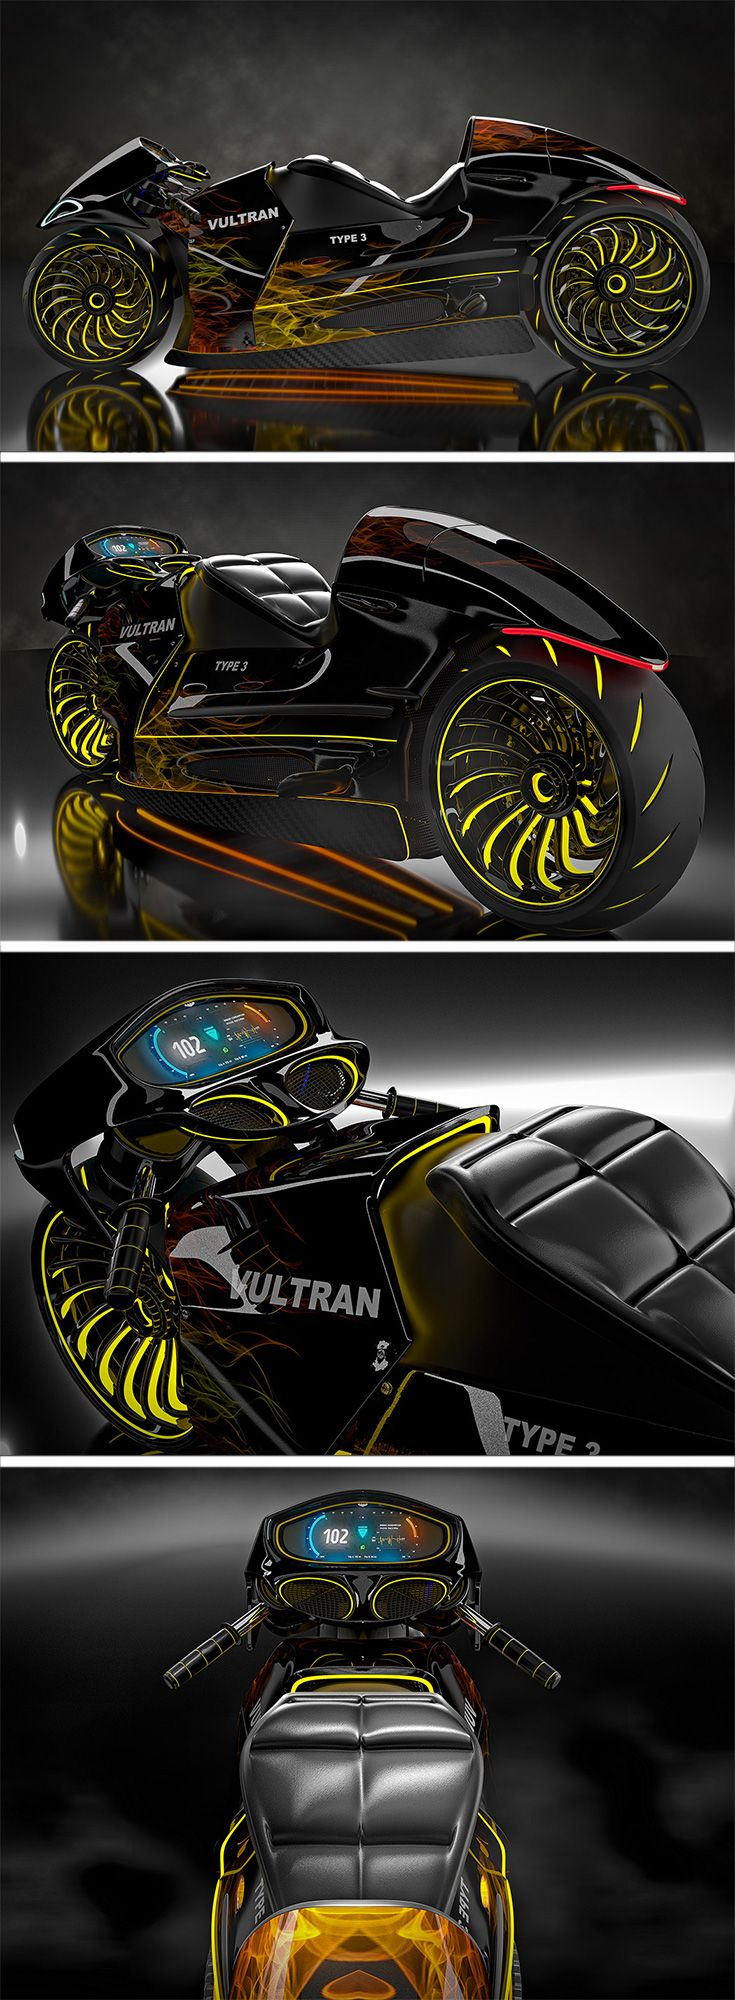 The Vultran Type 3 is an automobile which is a cool cocktail of past and future riding technologies.